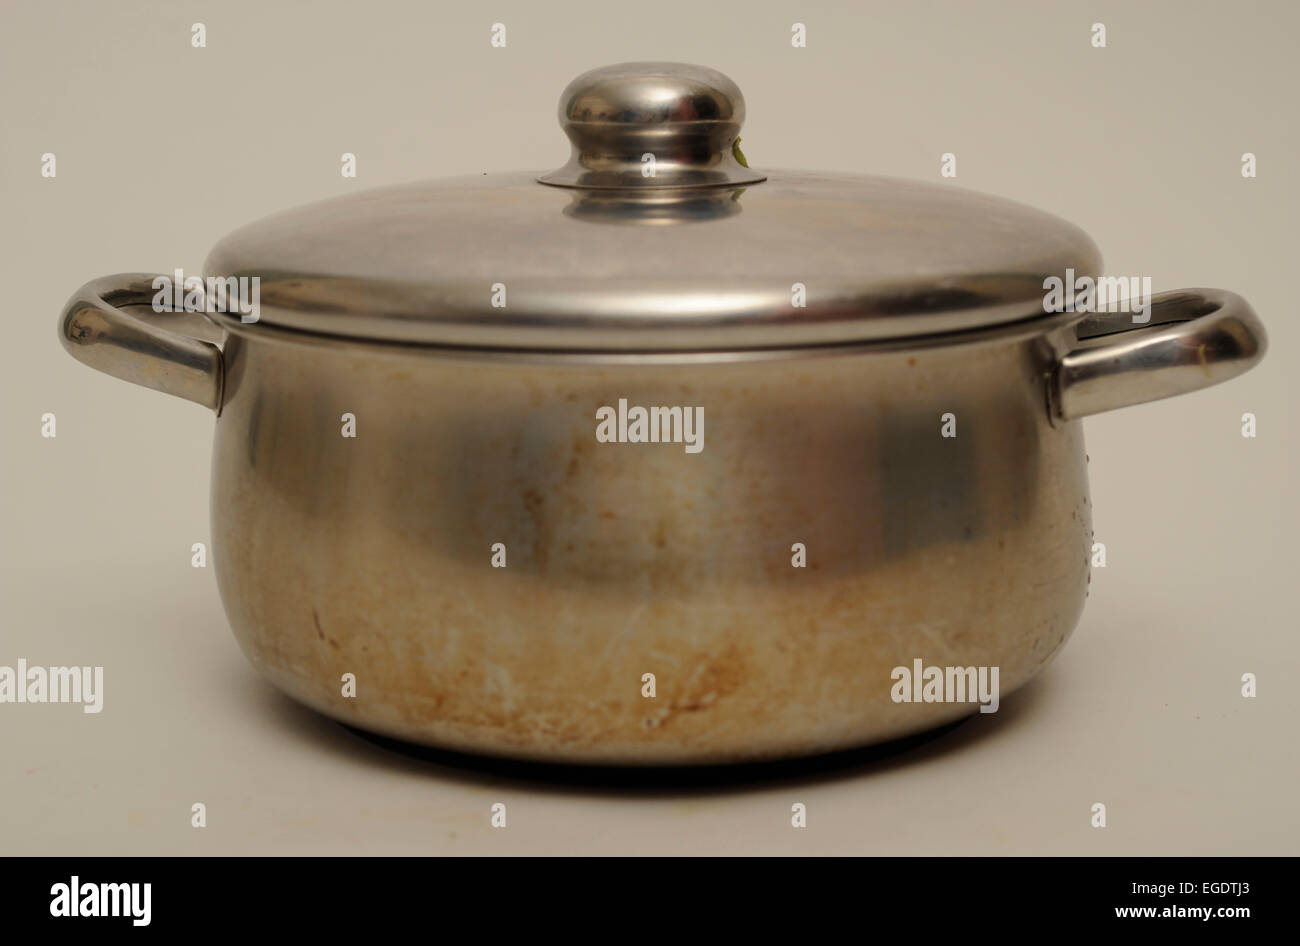 Stainless Steel Cooking Pot - Stock Image